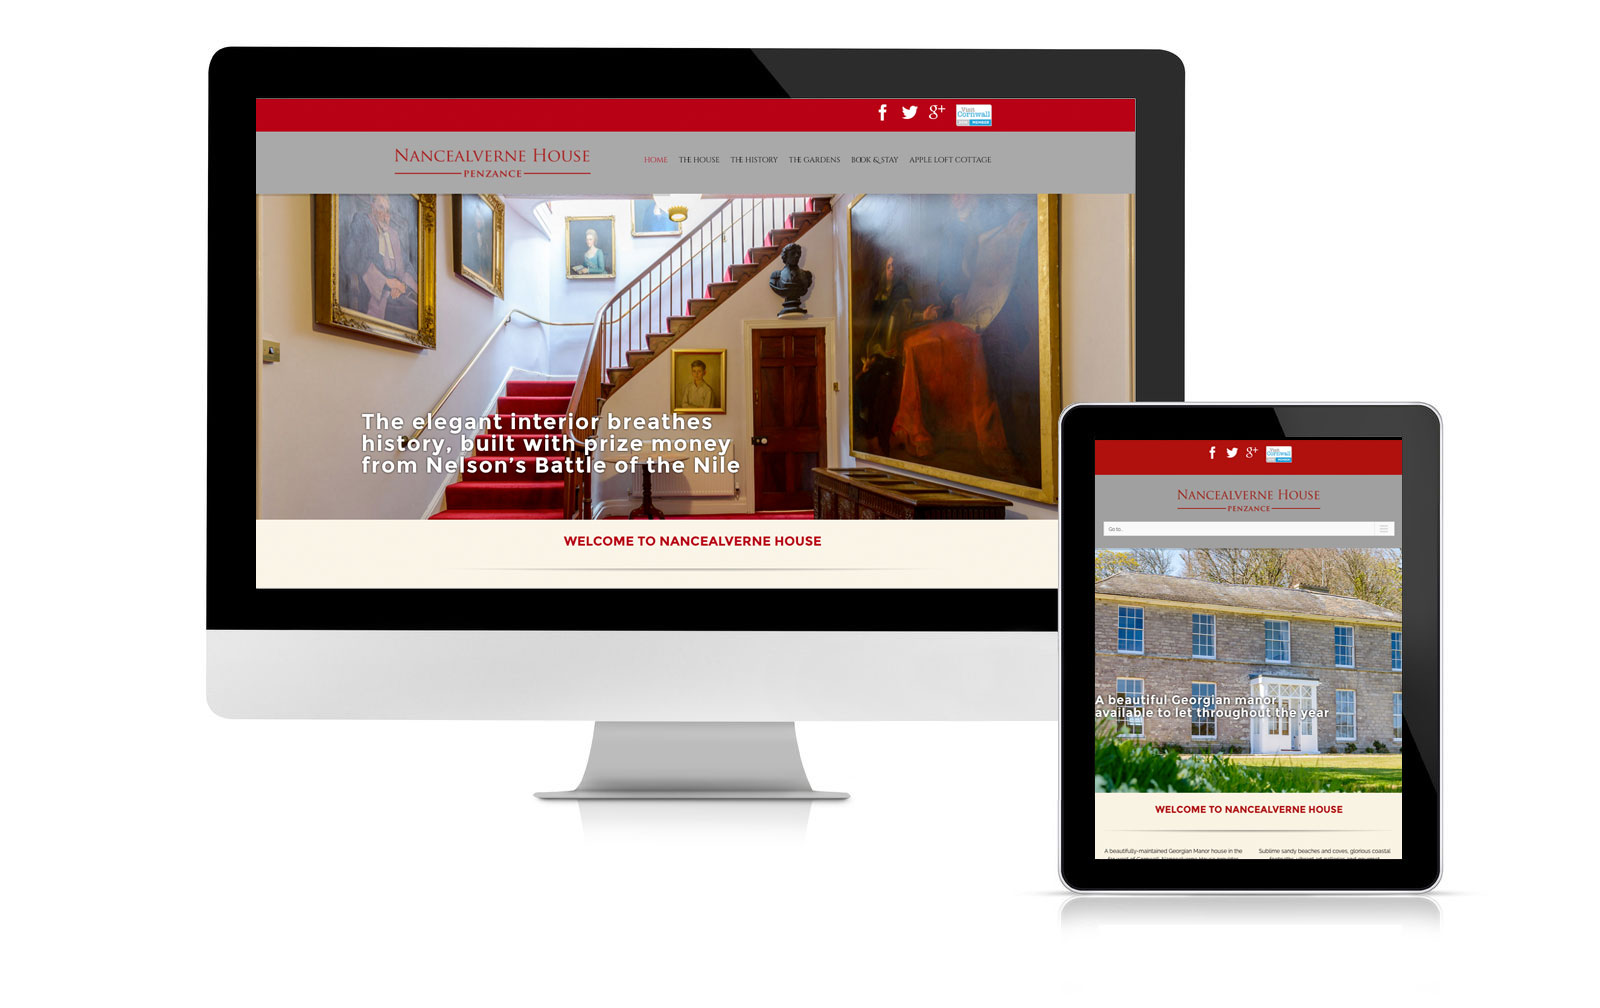 Nancealverne House website design